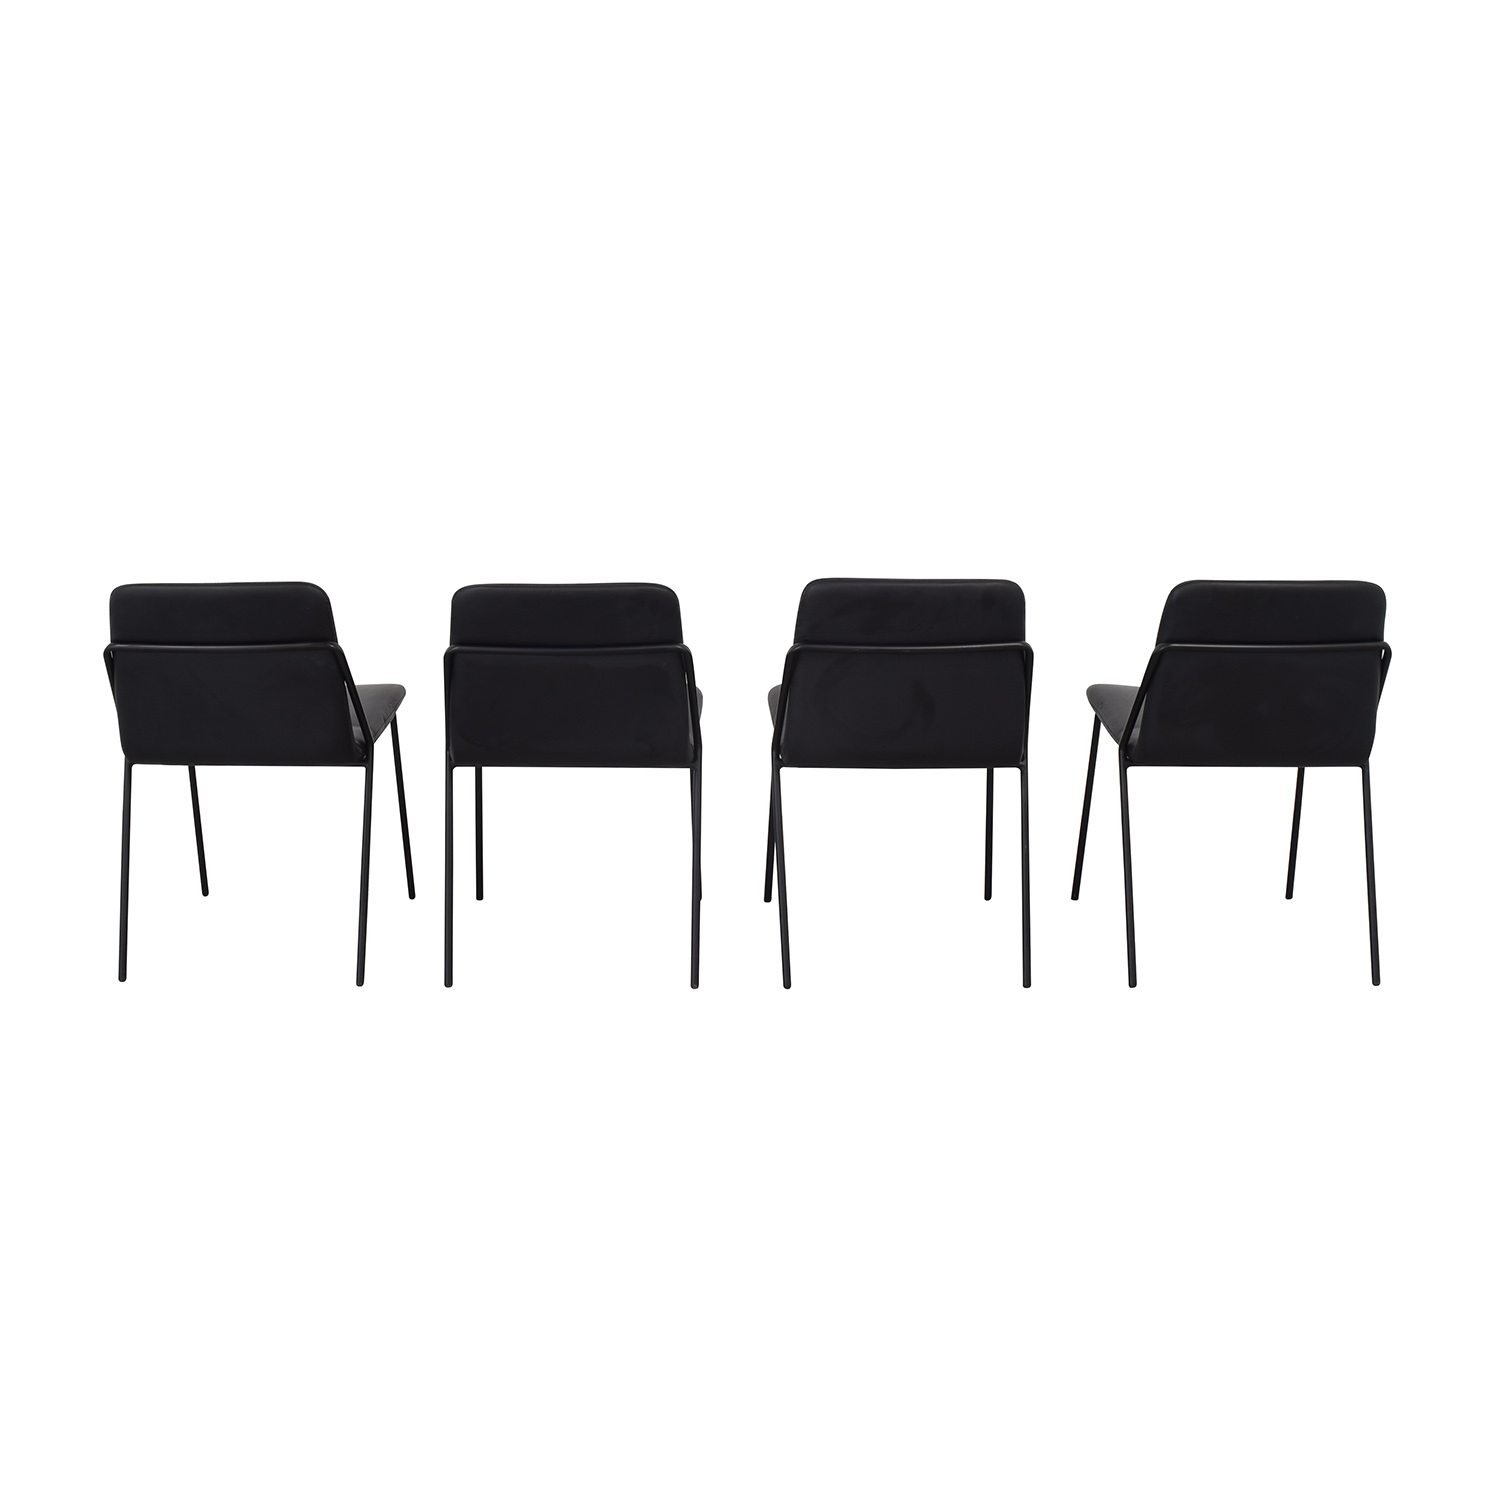 m.a.d. Black Sling Upholstered Chairs / Dining Chairs